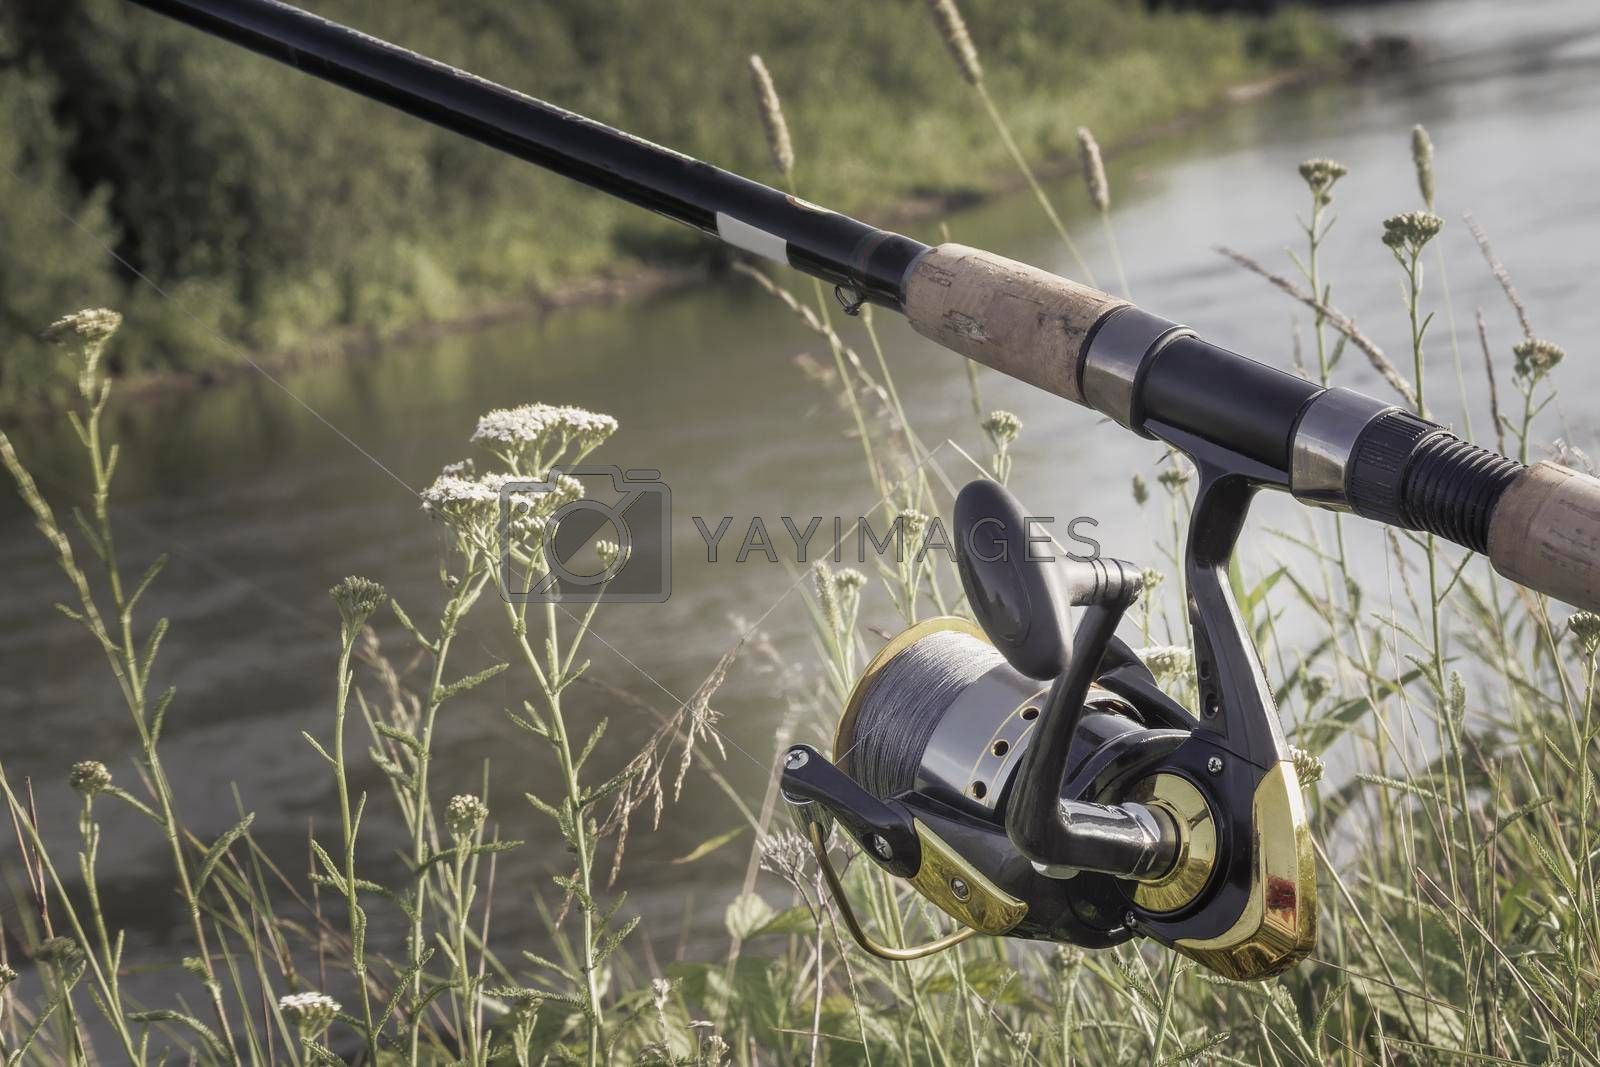 Royalty free image of Feeder - English fishing tackle for catching fish. by georgina198